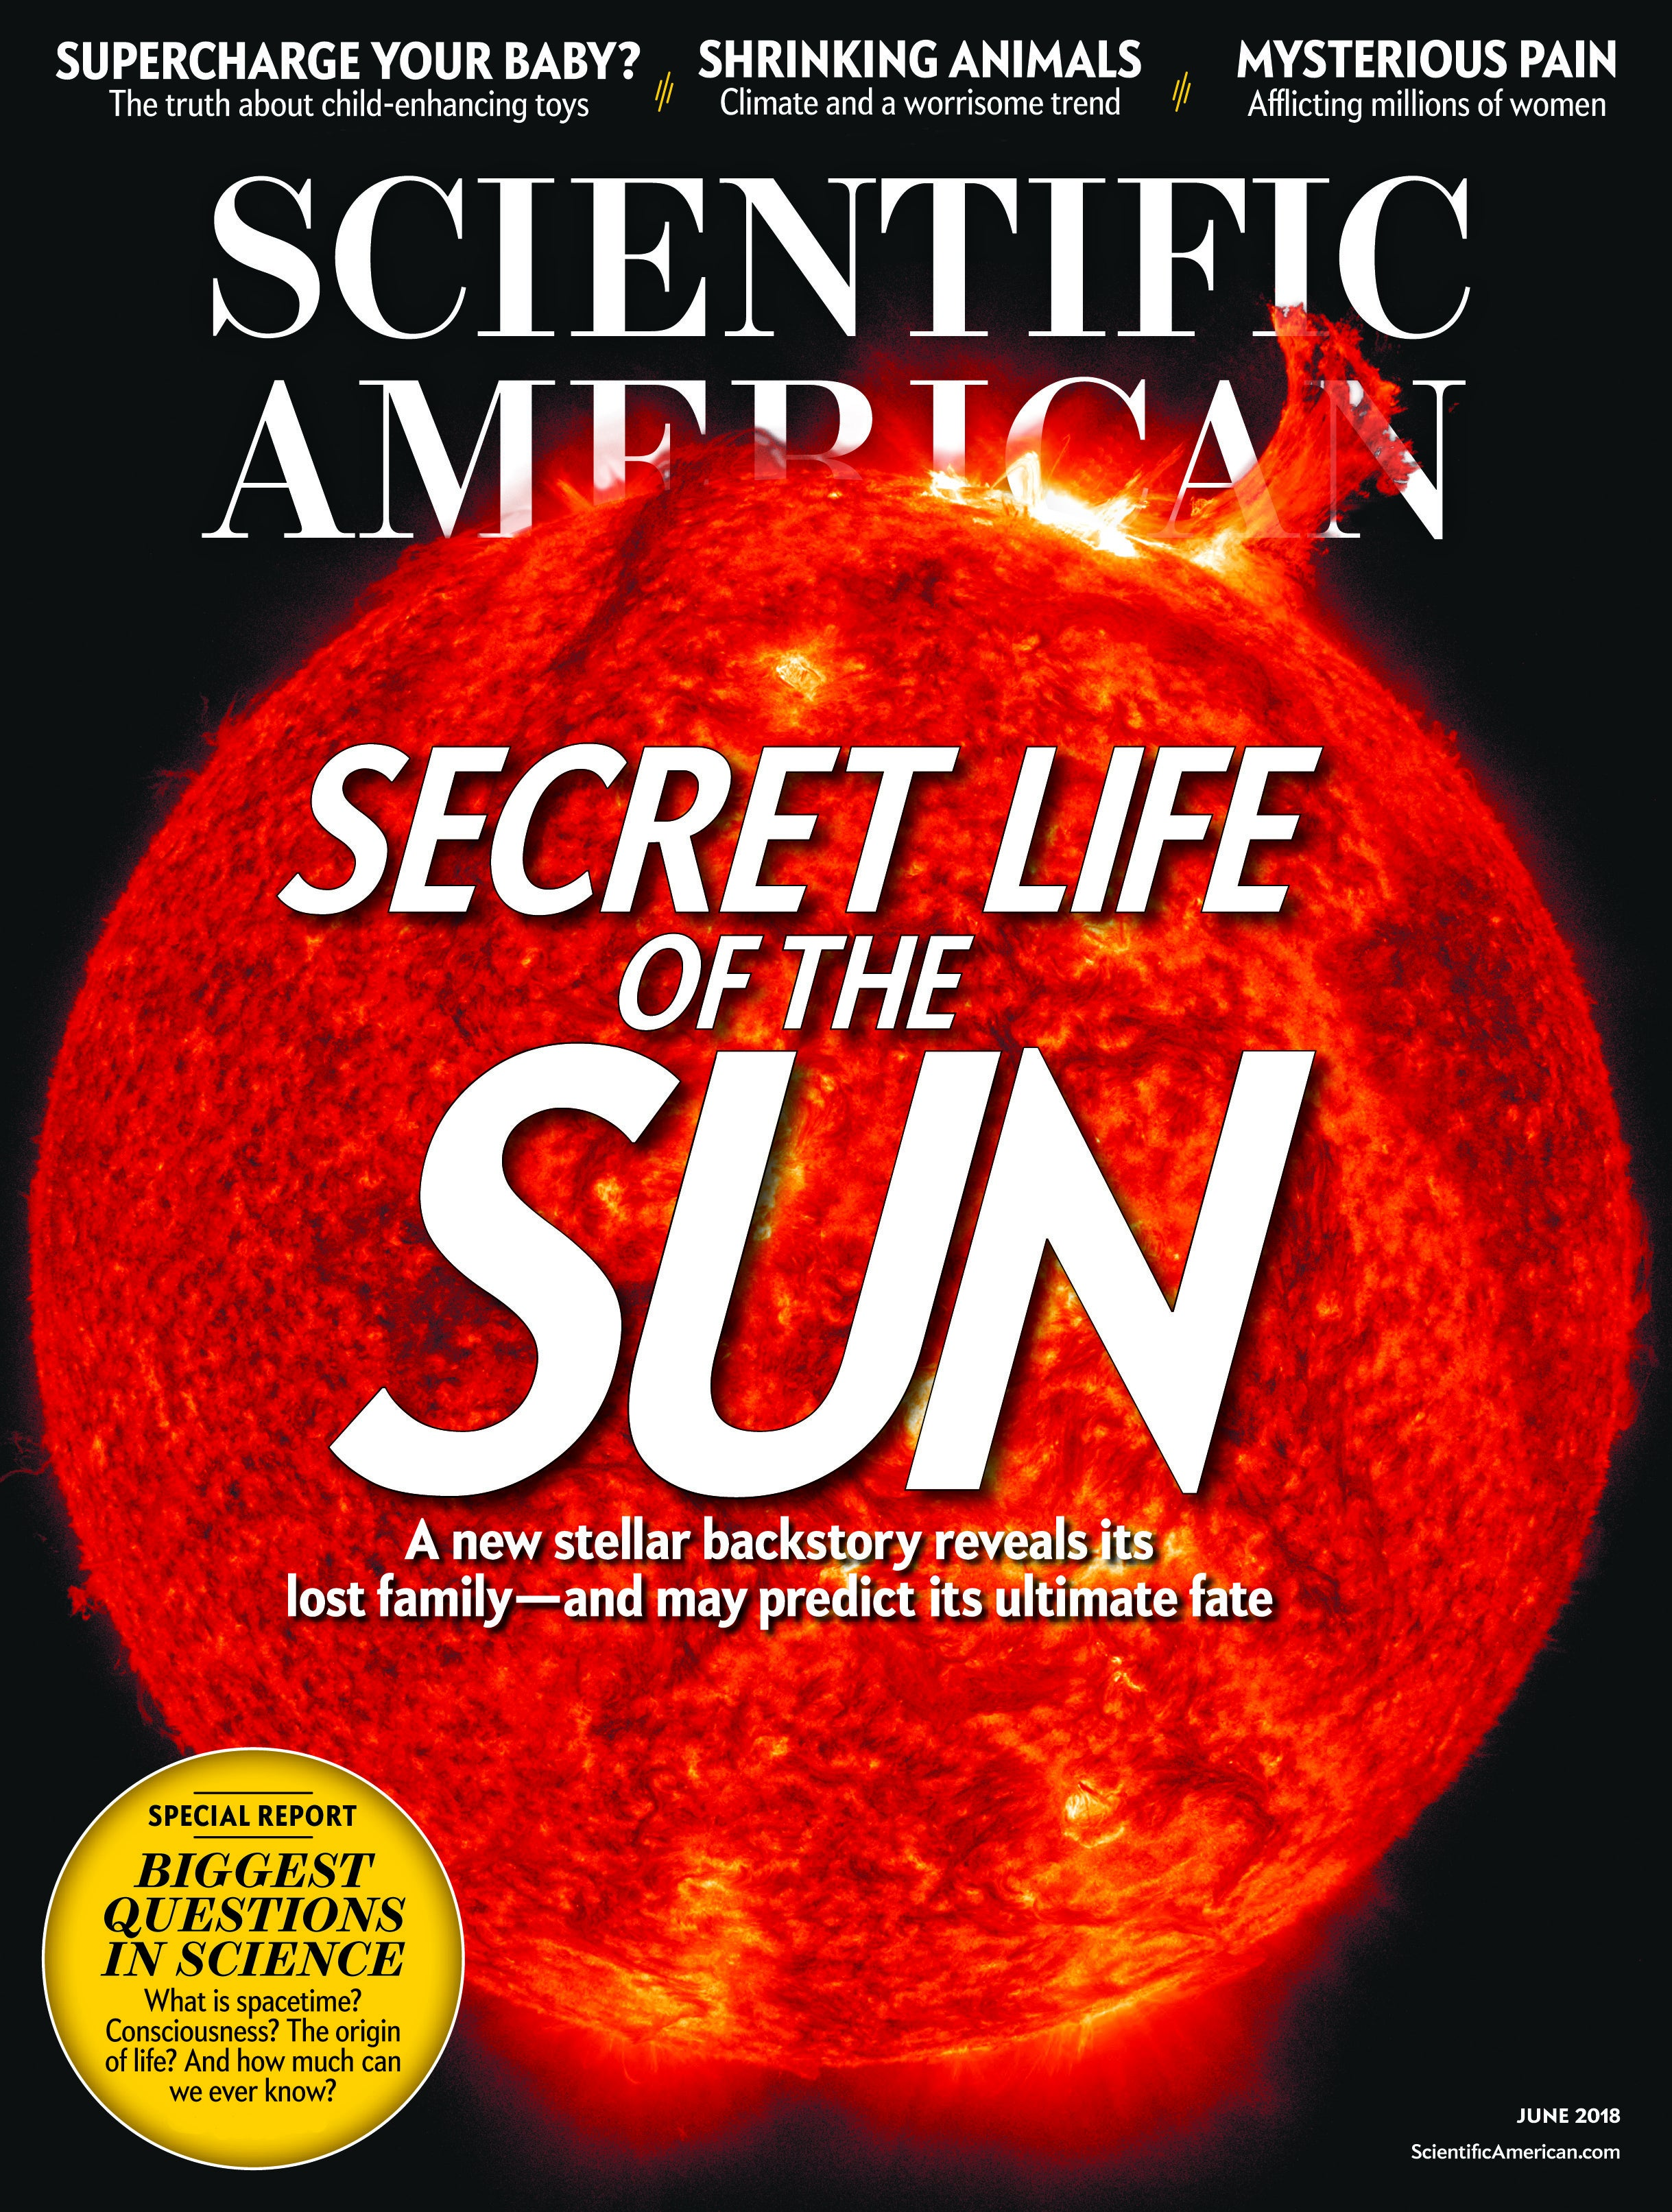 Scientific American Volume 318, Issue 6